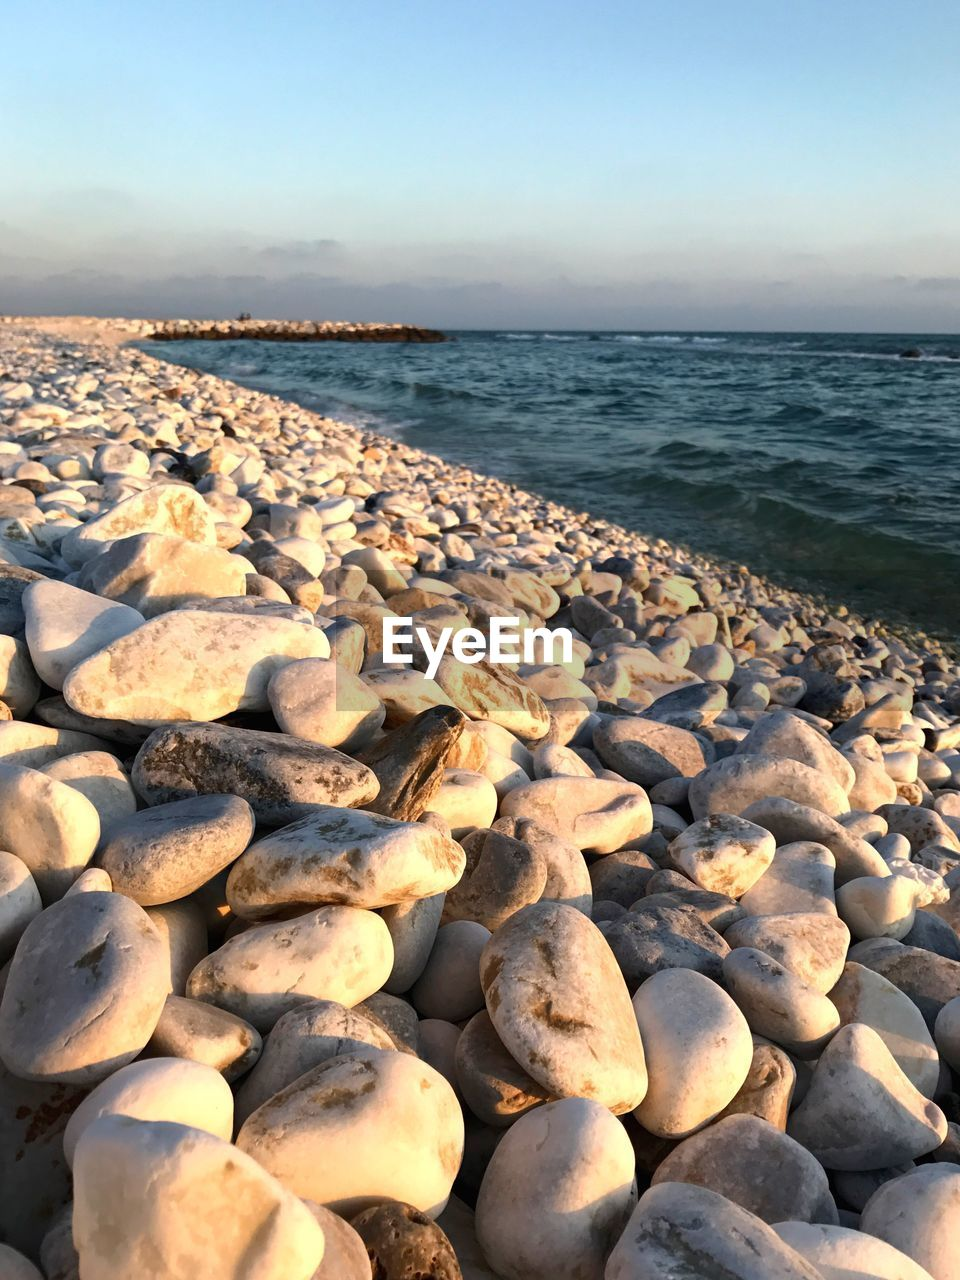 pebble, sea, water, beach, shore, nature, pebble beach, tranquil scene, beauty in nature, outdoors, tranquility, scenics, no people, day, horizon over water, clear sky, sky, close-up